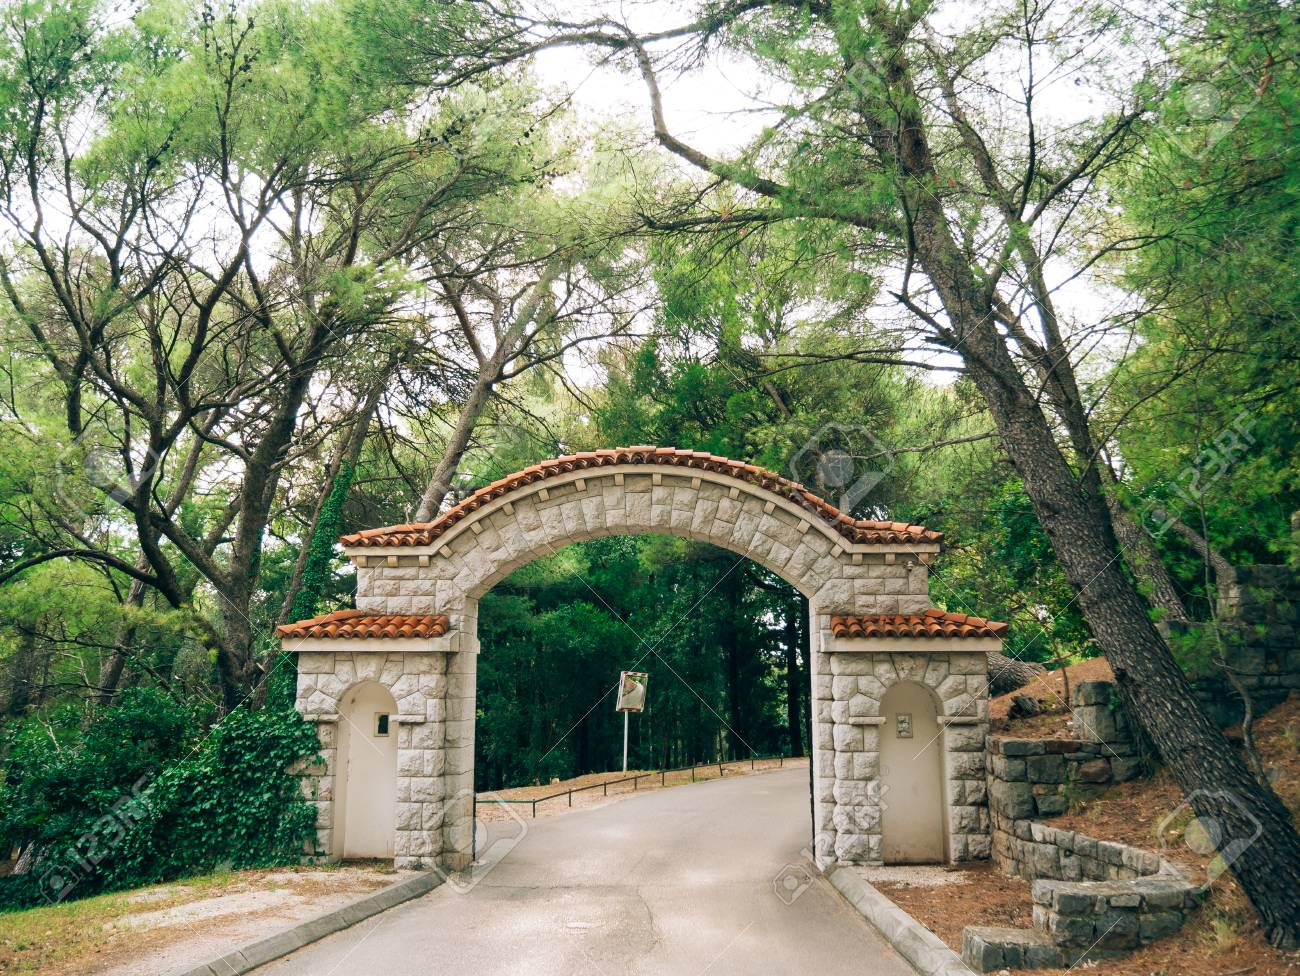 Stone Gate With A Tiled Roof In The Forest Handmade Exterior Stock Photo Picture And Royalty Free Image Image 85824834